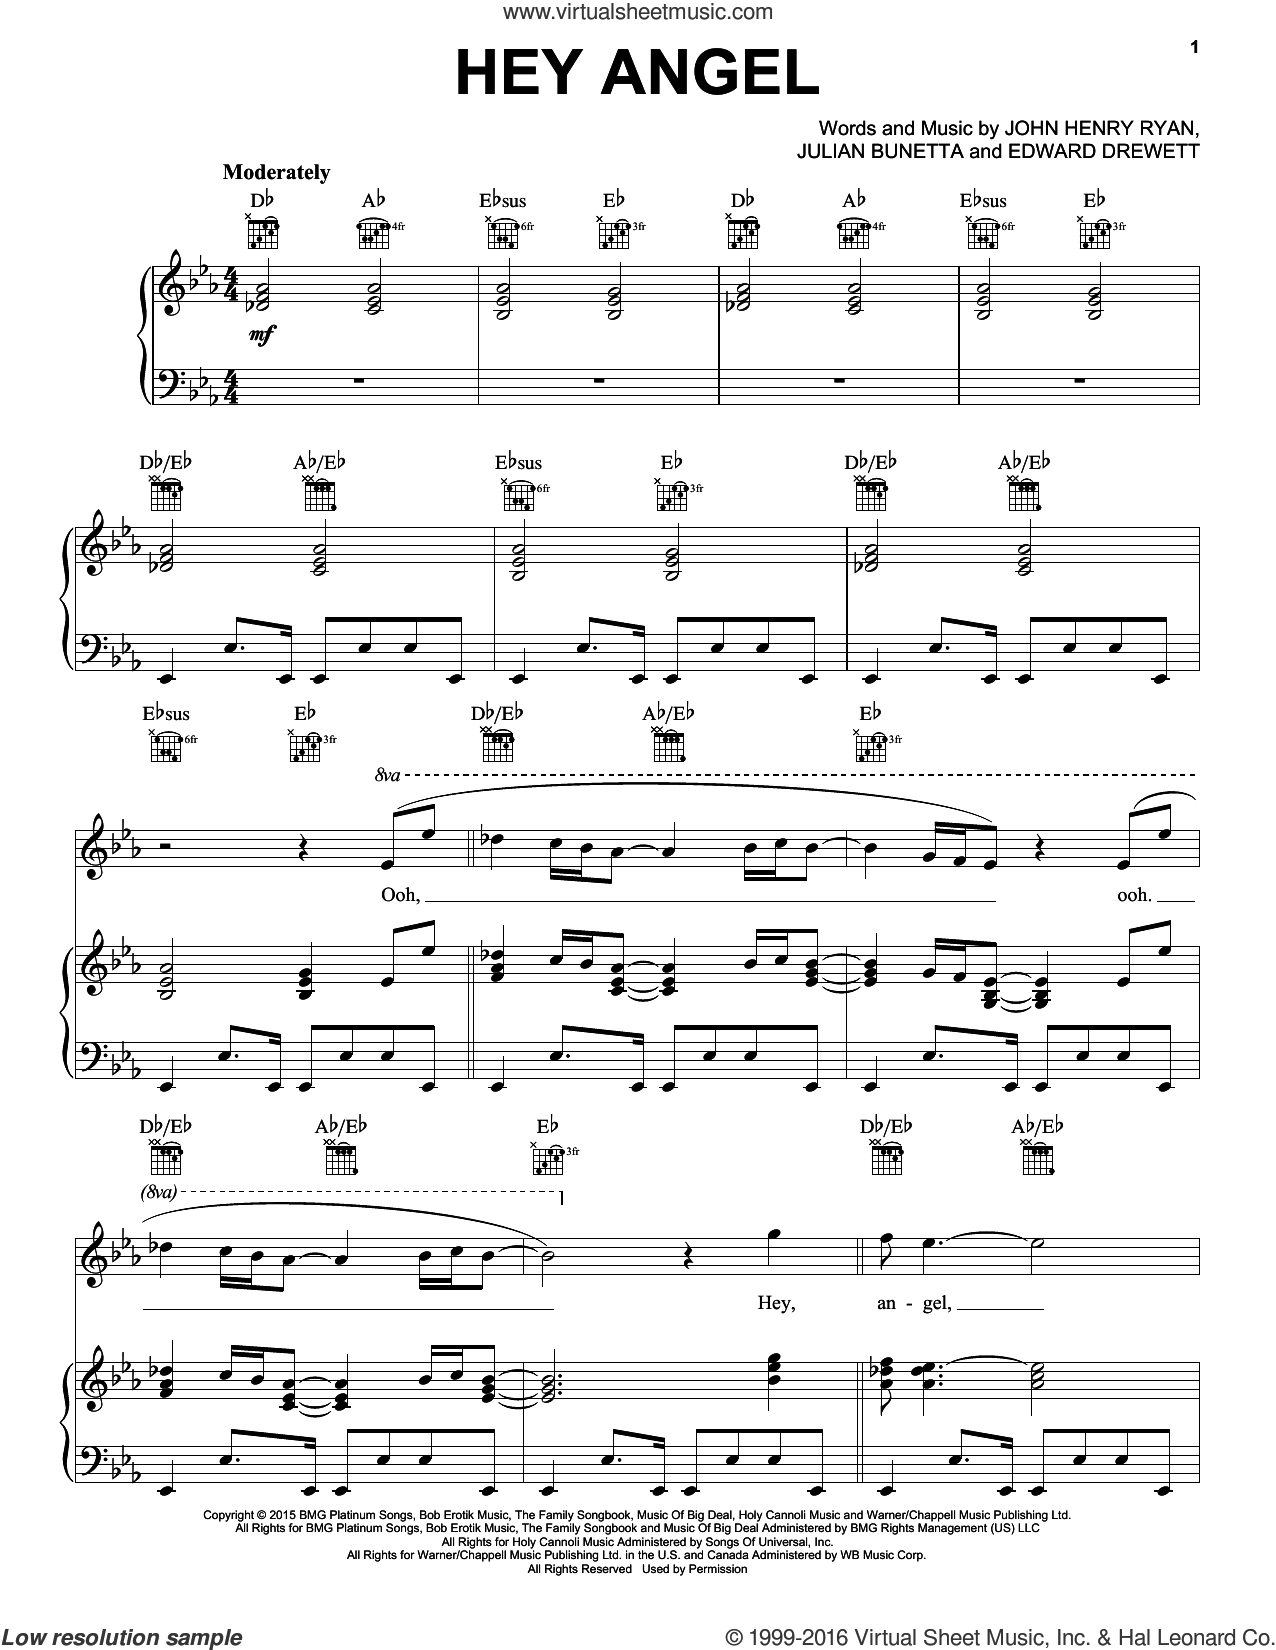 Hey Angel sheet music for voice, piano or guitar by One Direction, Edward Drewett and Julian Bunetta. Score Image Preview.